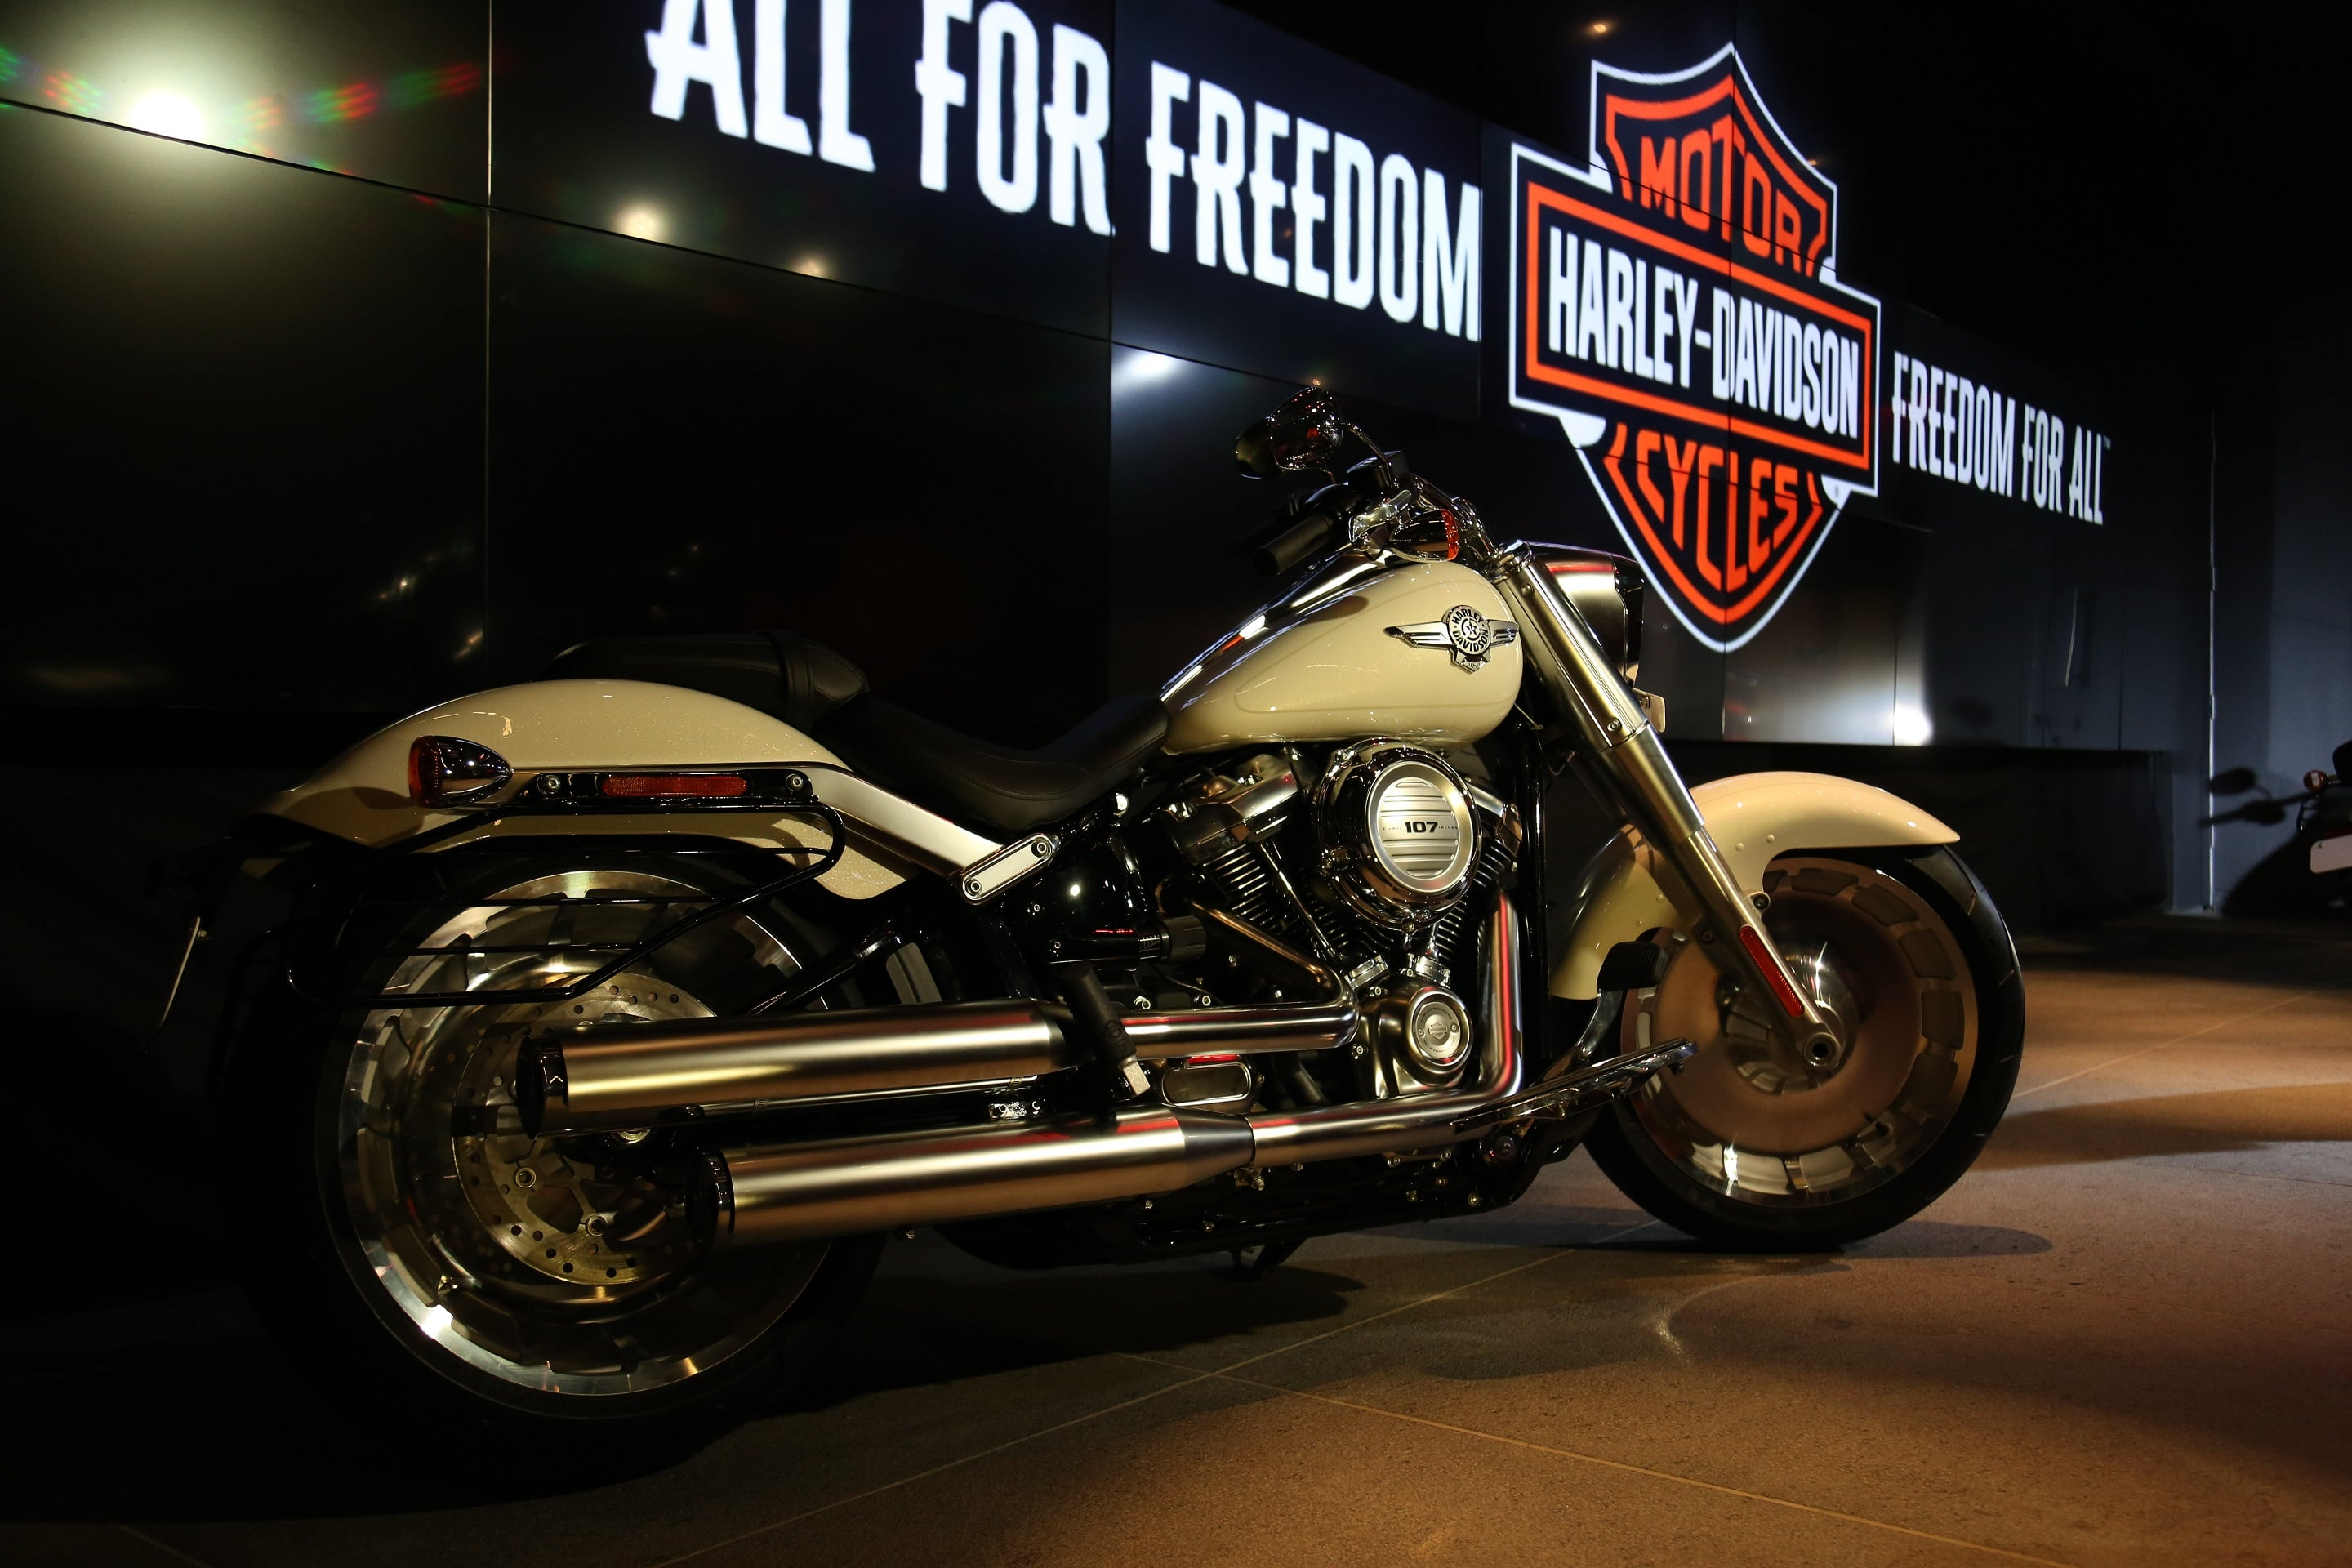 2018 Harley Davidson Softail India Prices, Specifications